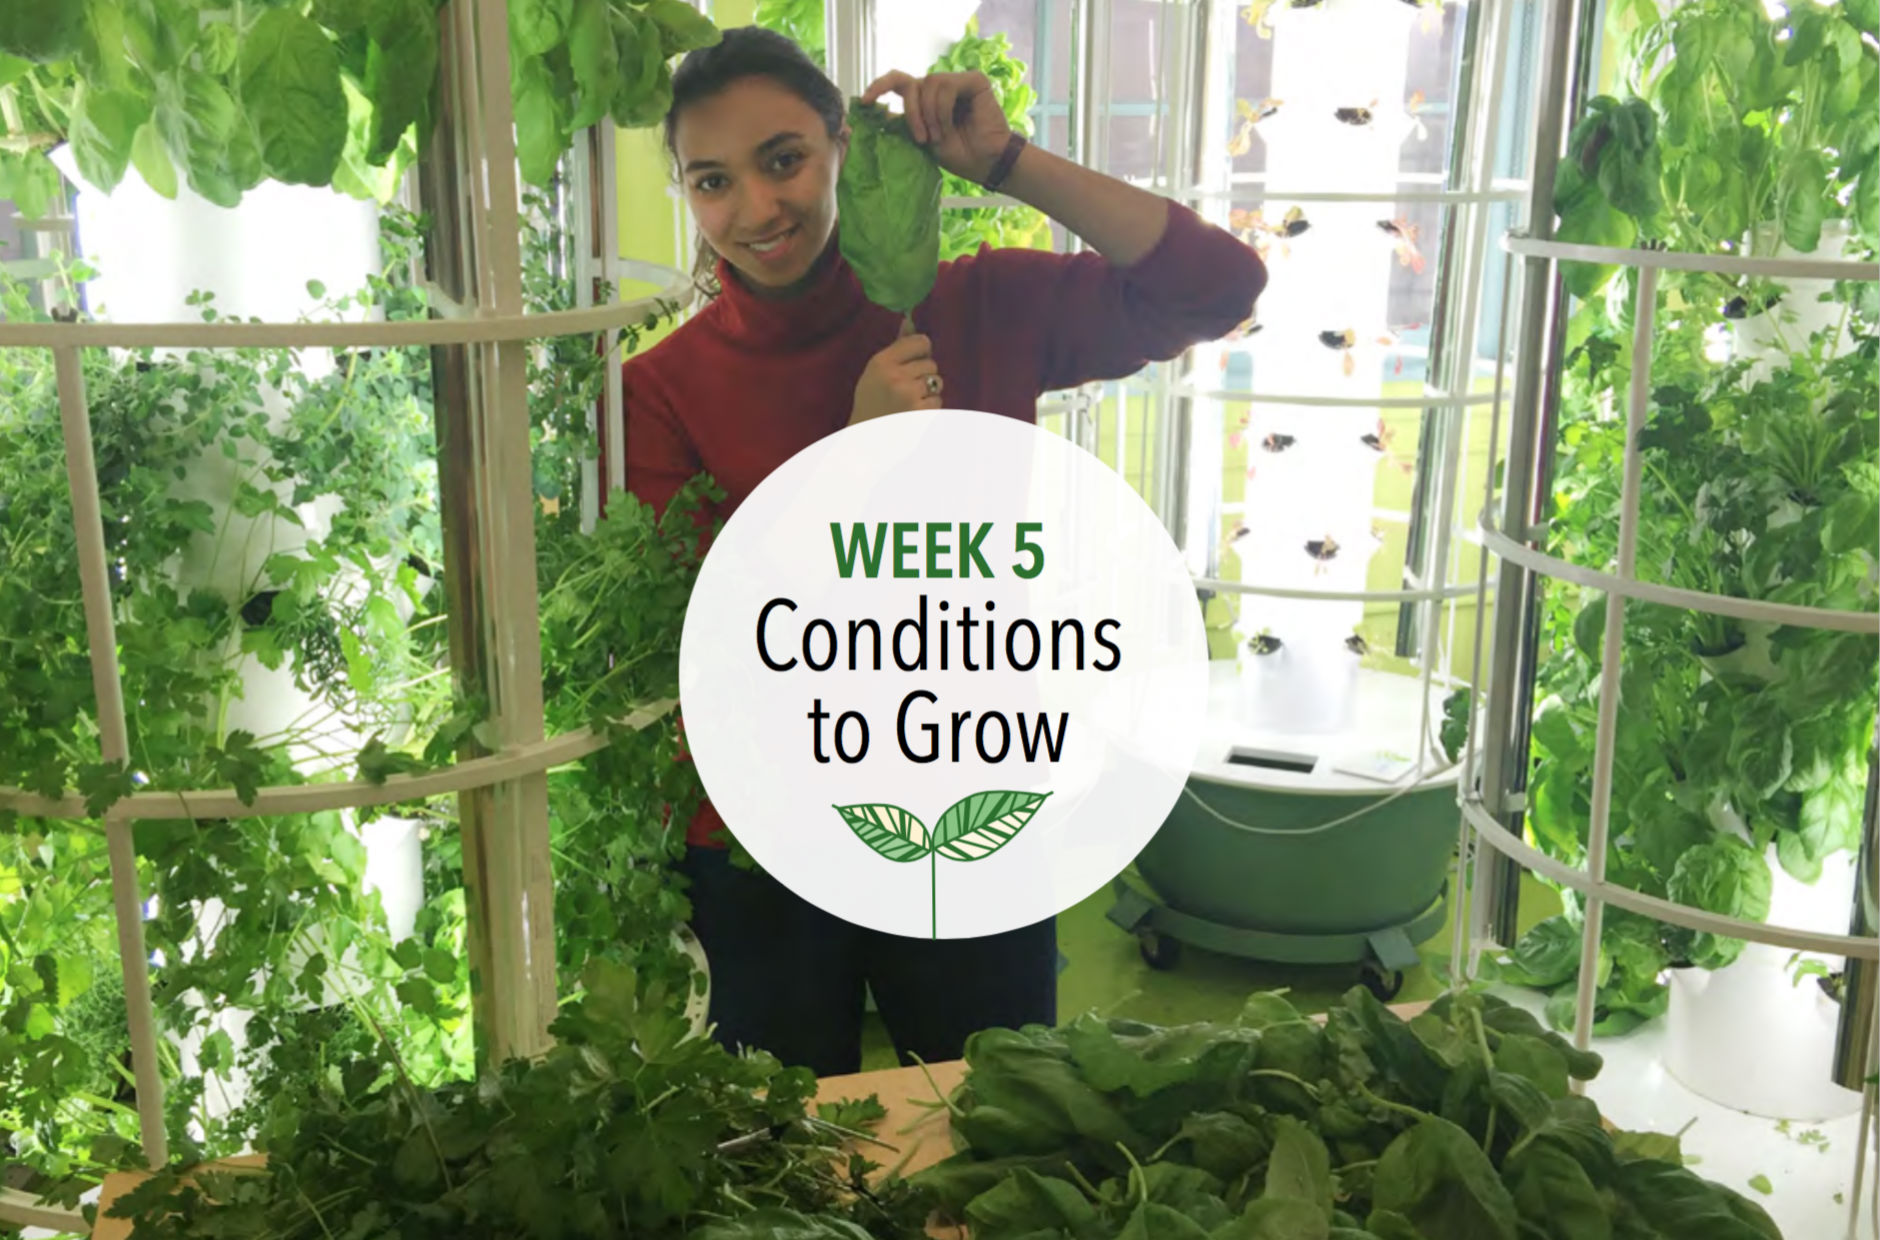 Week 5: Conditions to Grow